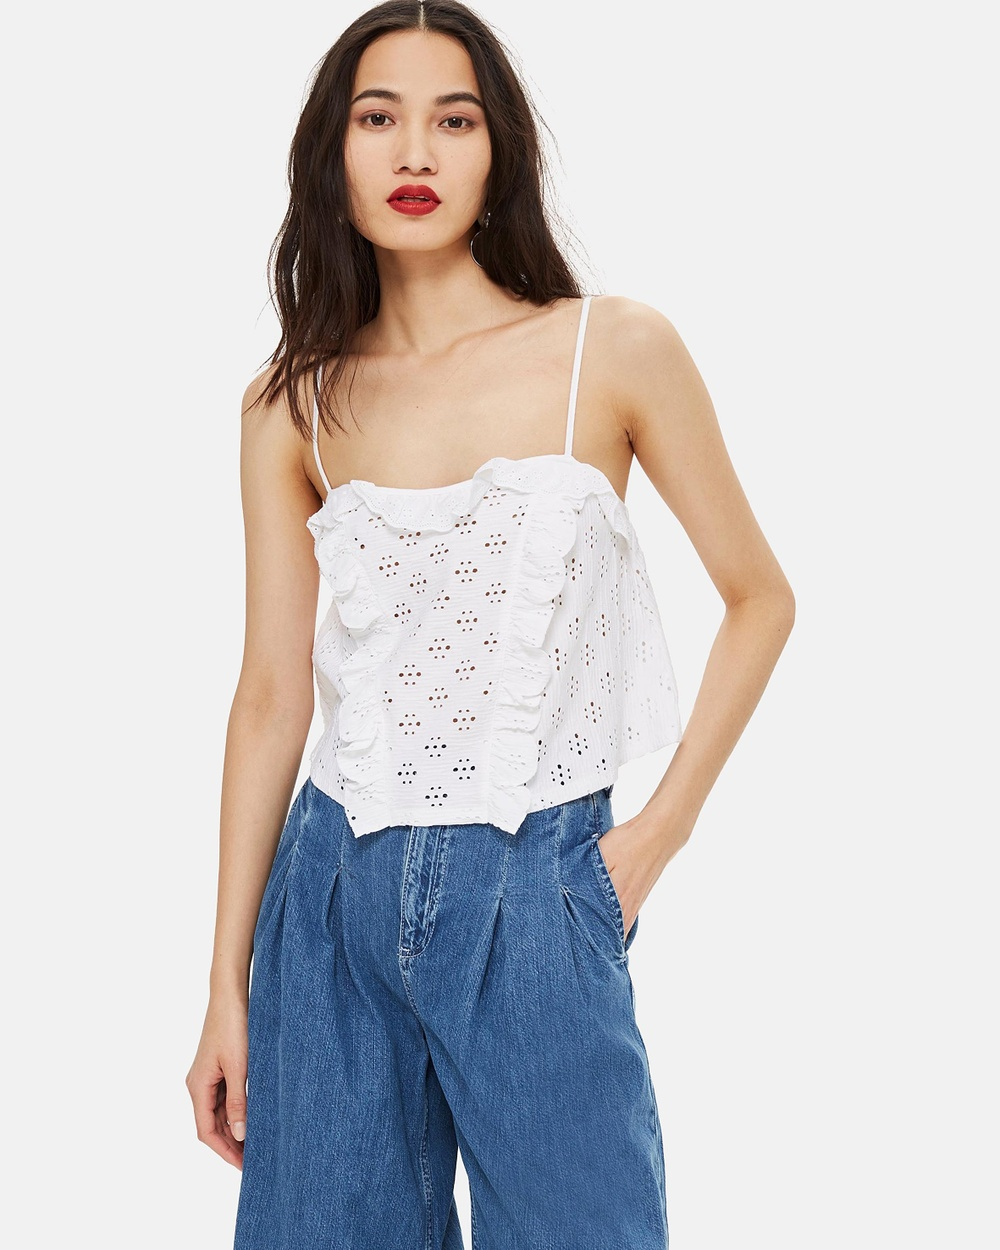 TOPSHOP Broderie Trim Camisole Top Tops White Broderie Trim Camisole Top